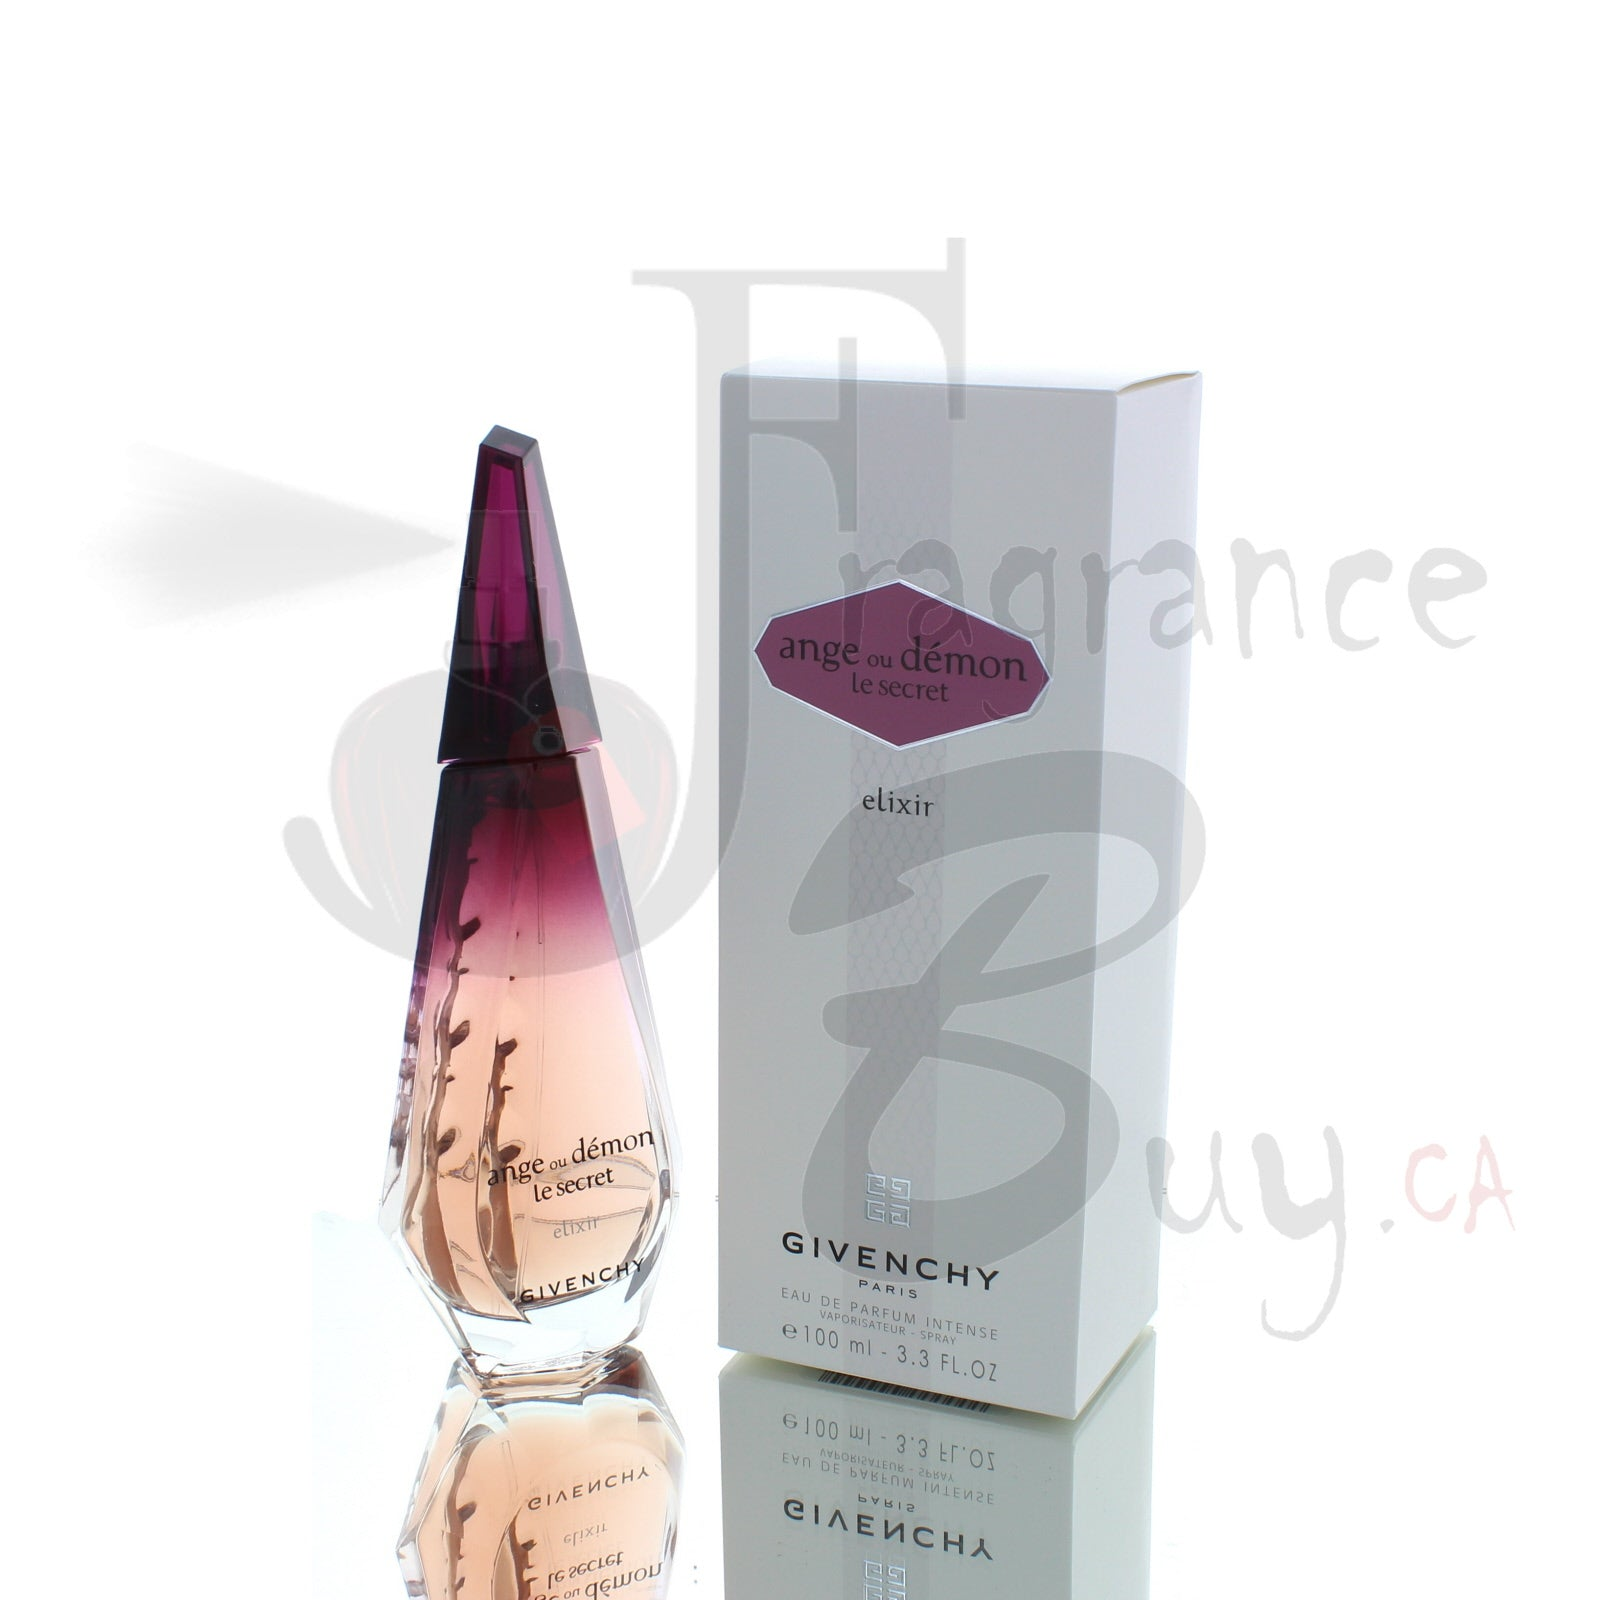 Givenchy Ange ou Demon Le Secret Elixir For Woman